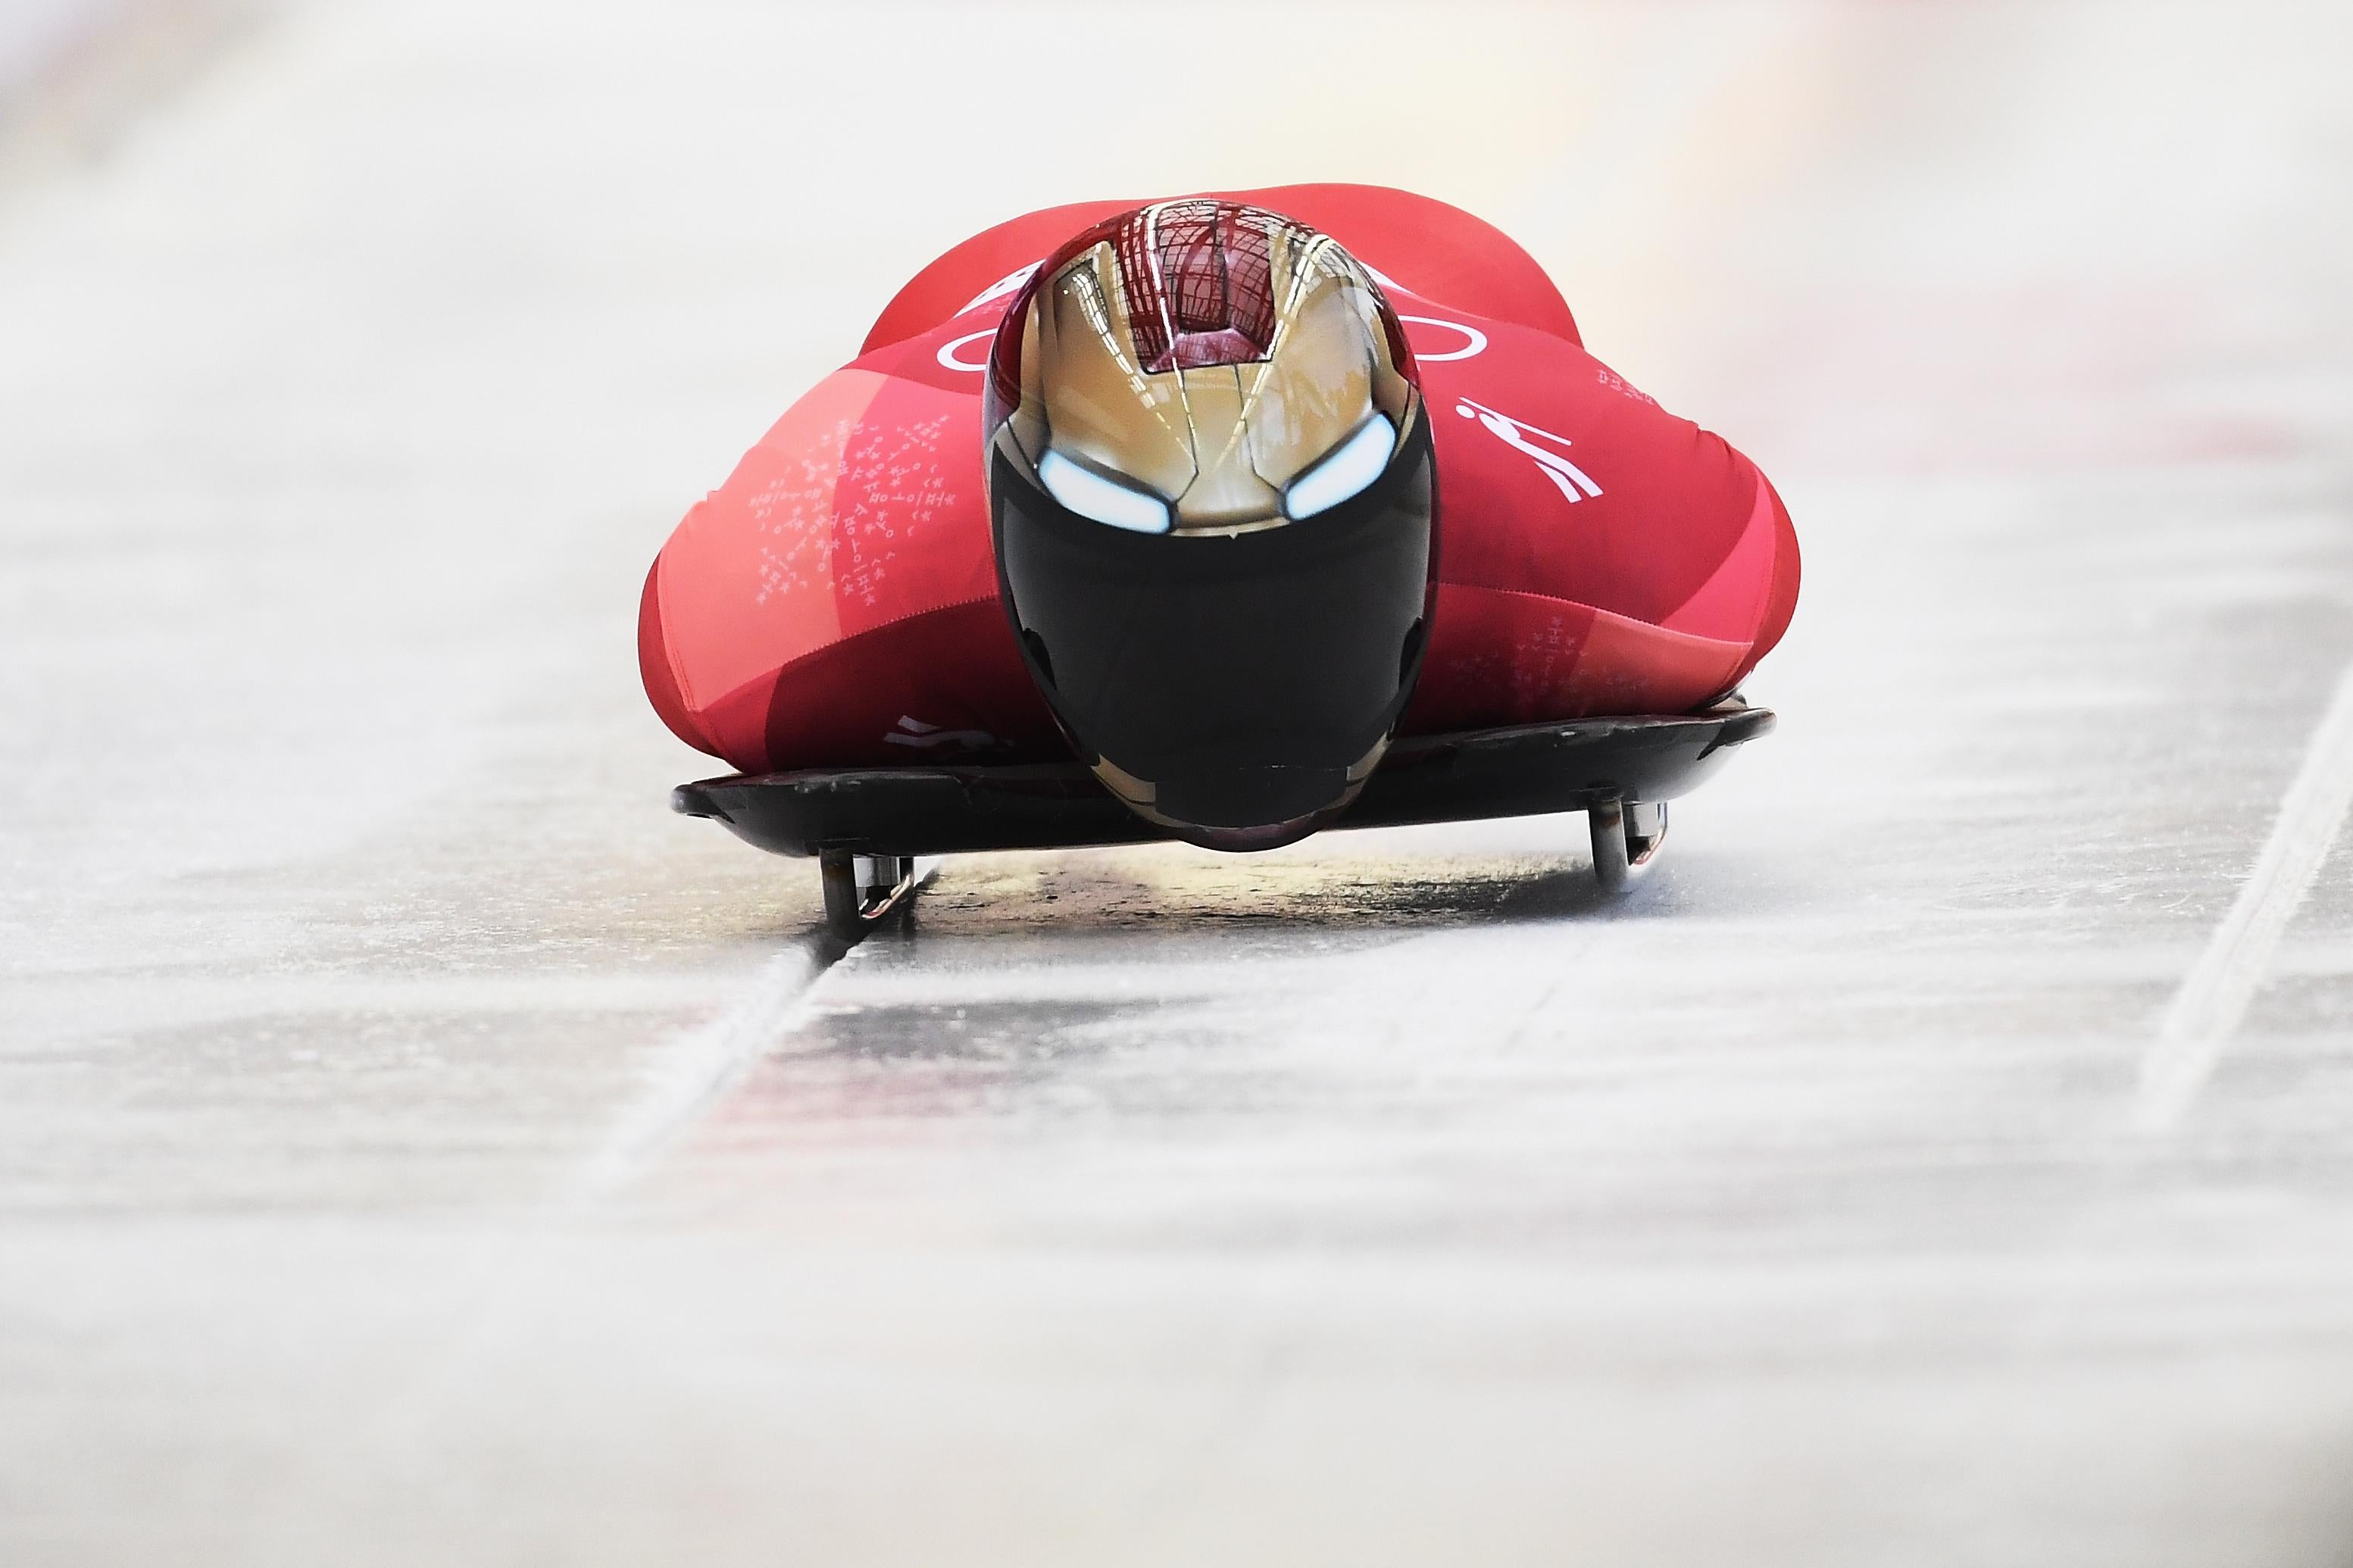 PYEONGCHANG-GUN, SOUTH KOREA - FEBRUARY 16:  Sungbin Yun of Korea slides on his way to winning the Men's Skeleton at Olympic Sliding Centre on February 16, 2018 in Pyeongchang-gun, South Korea.  (Photo by Quinn Rooney/Getty Images)